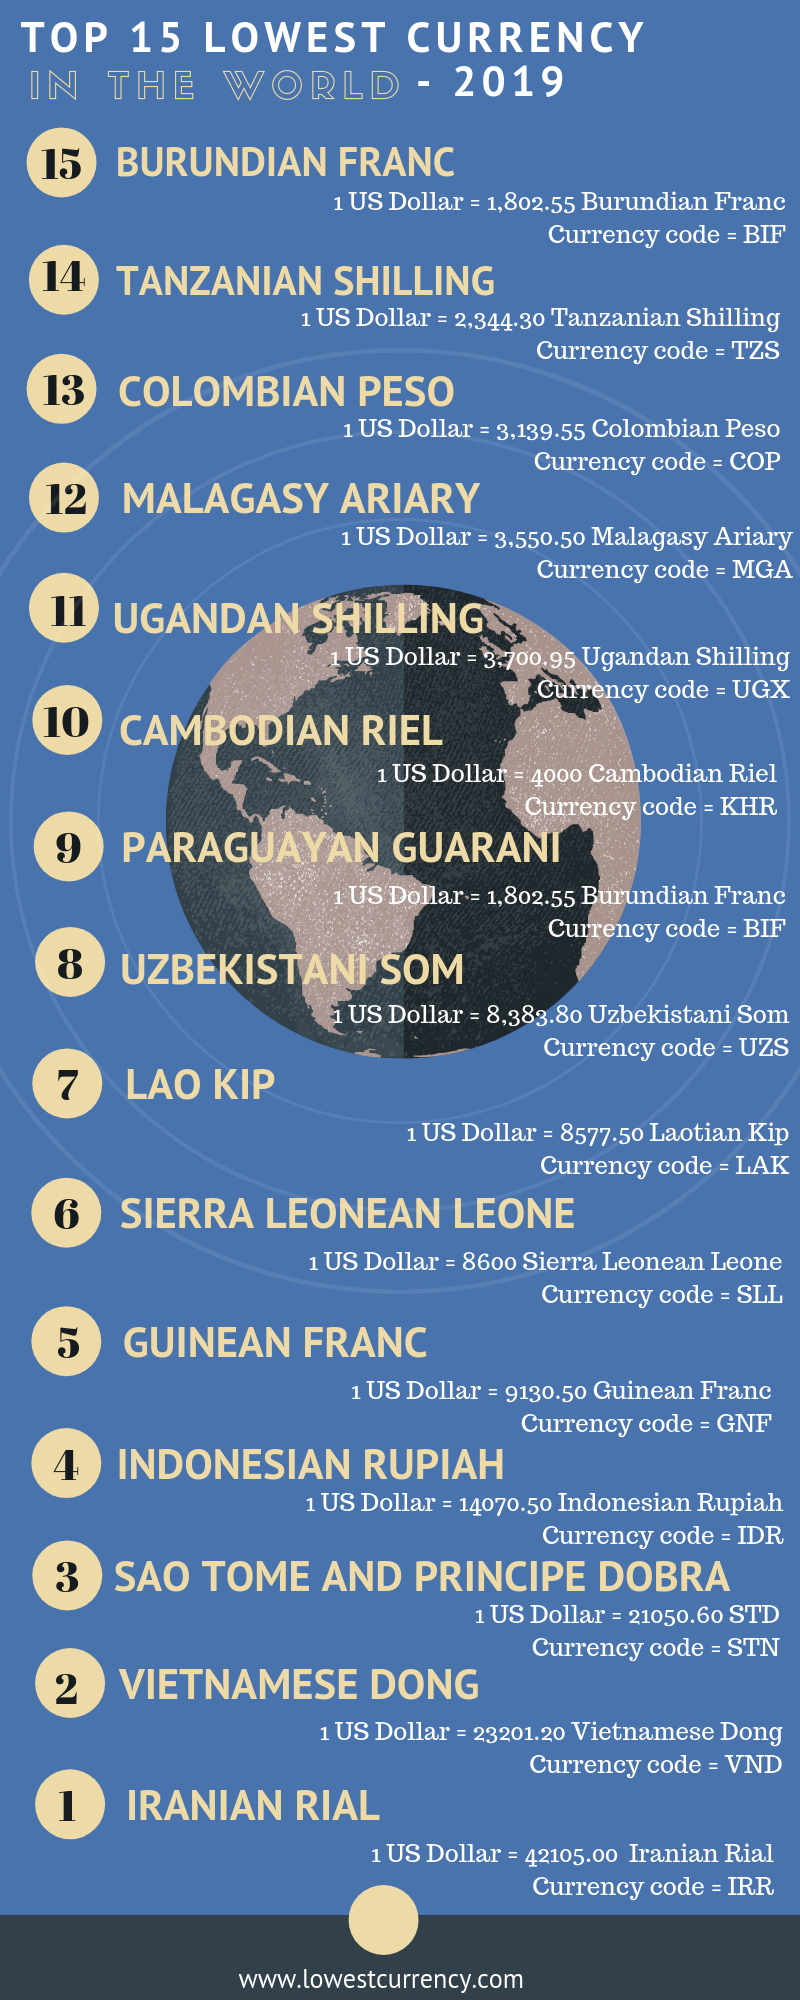 Top 15 least valued currency in the world in 2019 - Infographic